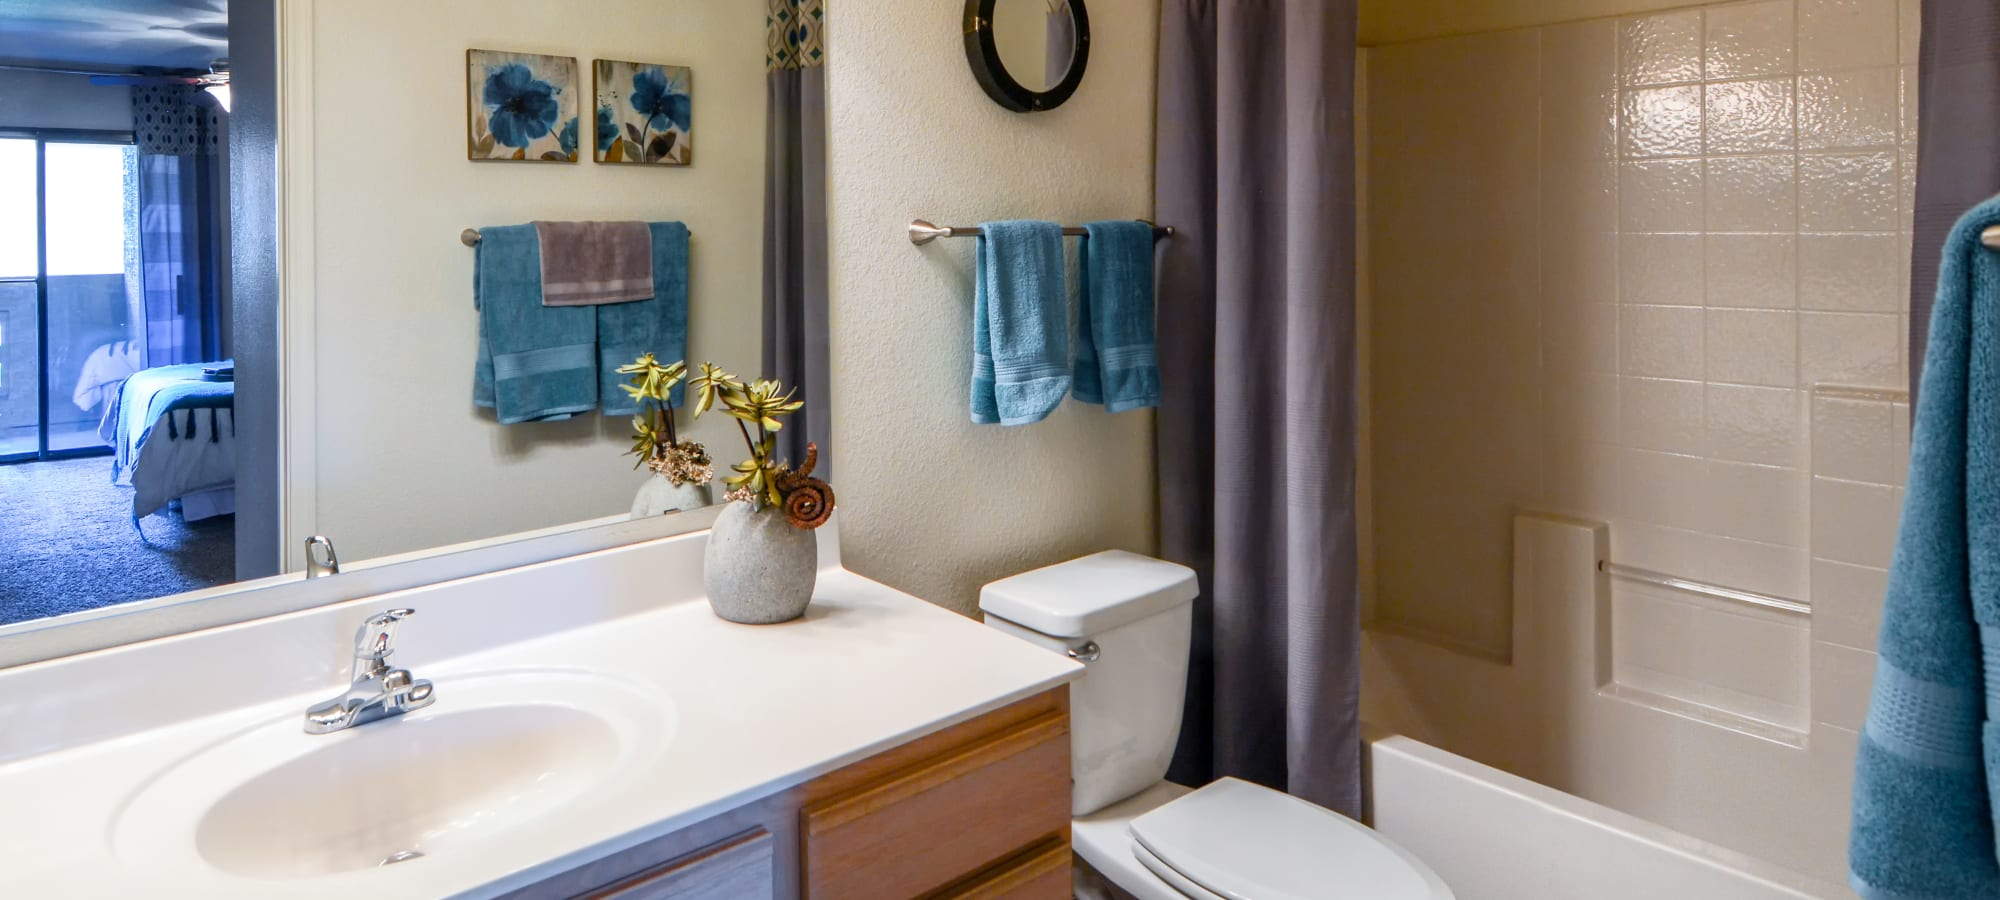 Bathroom with blue accents at The Palms on Scottsdale in Tempe, Arizona